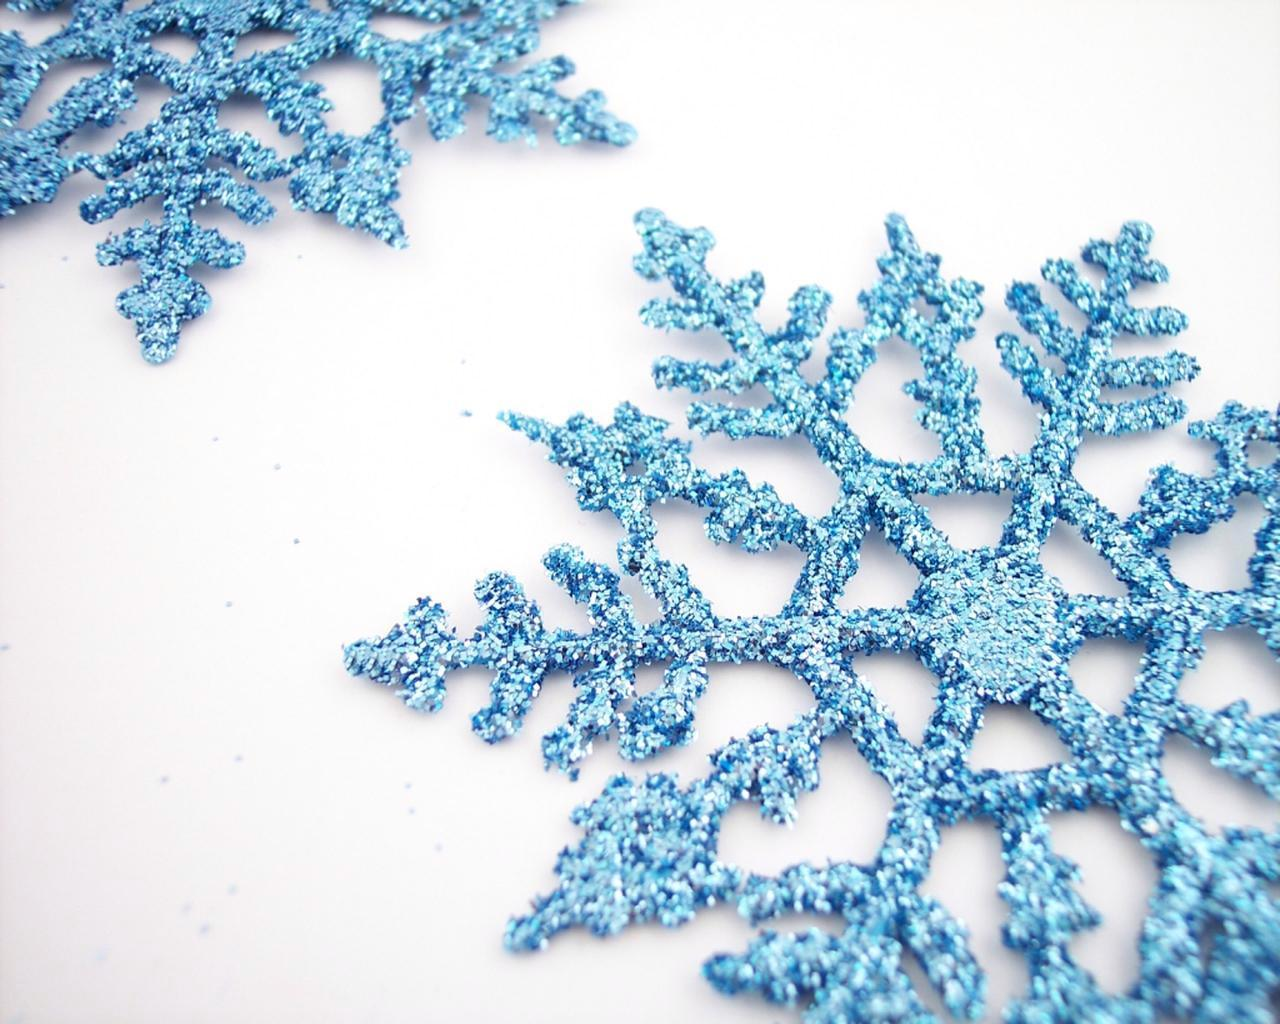 Bluew Snowflake With White Backgound